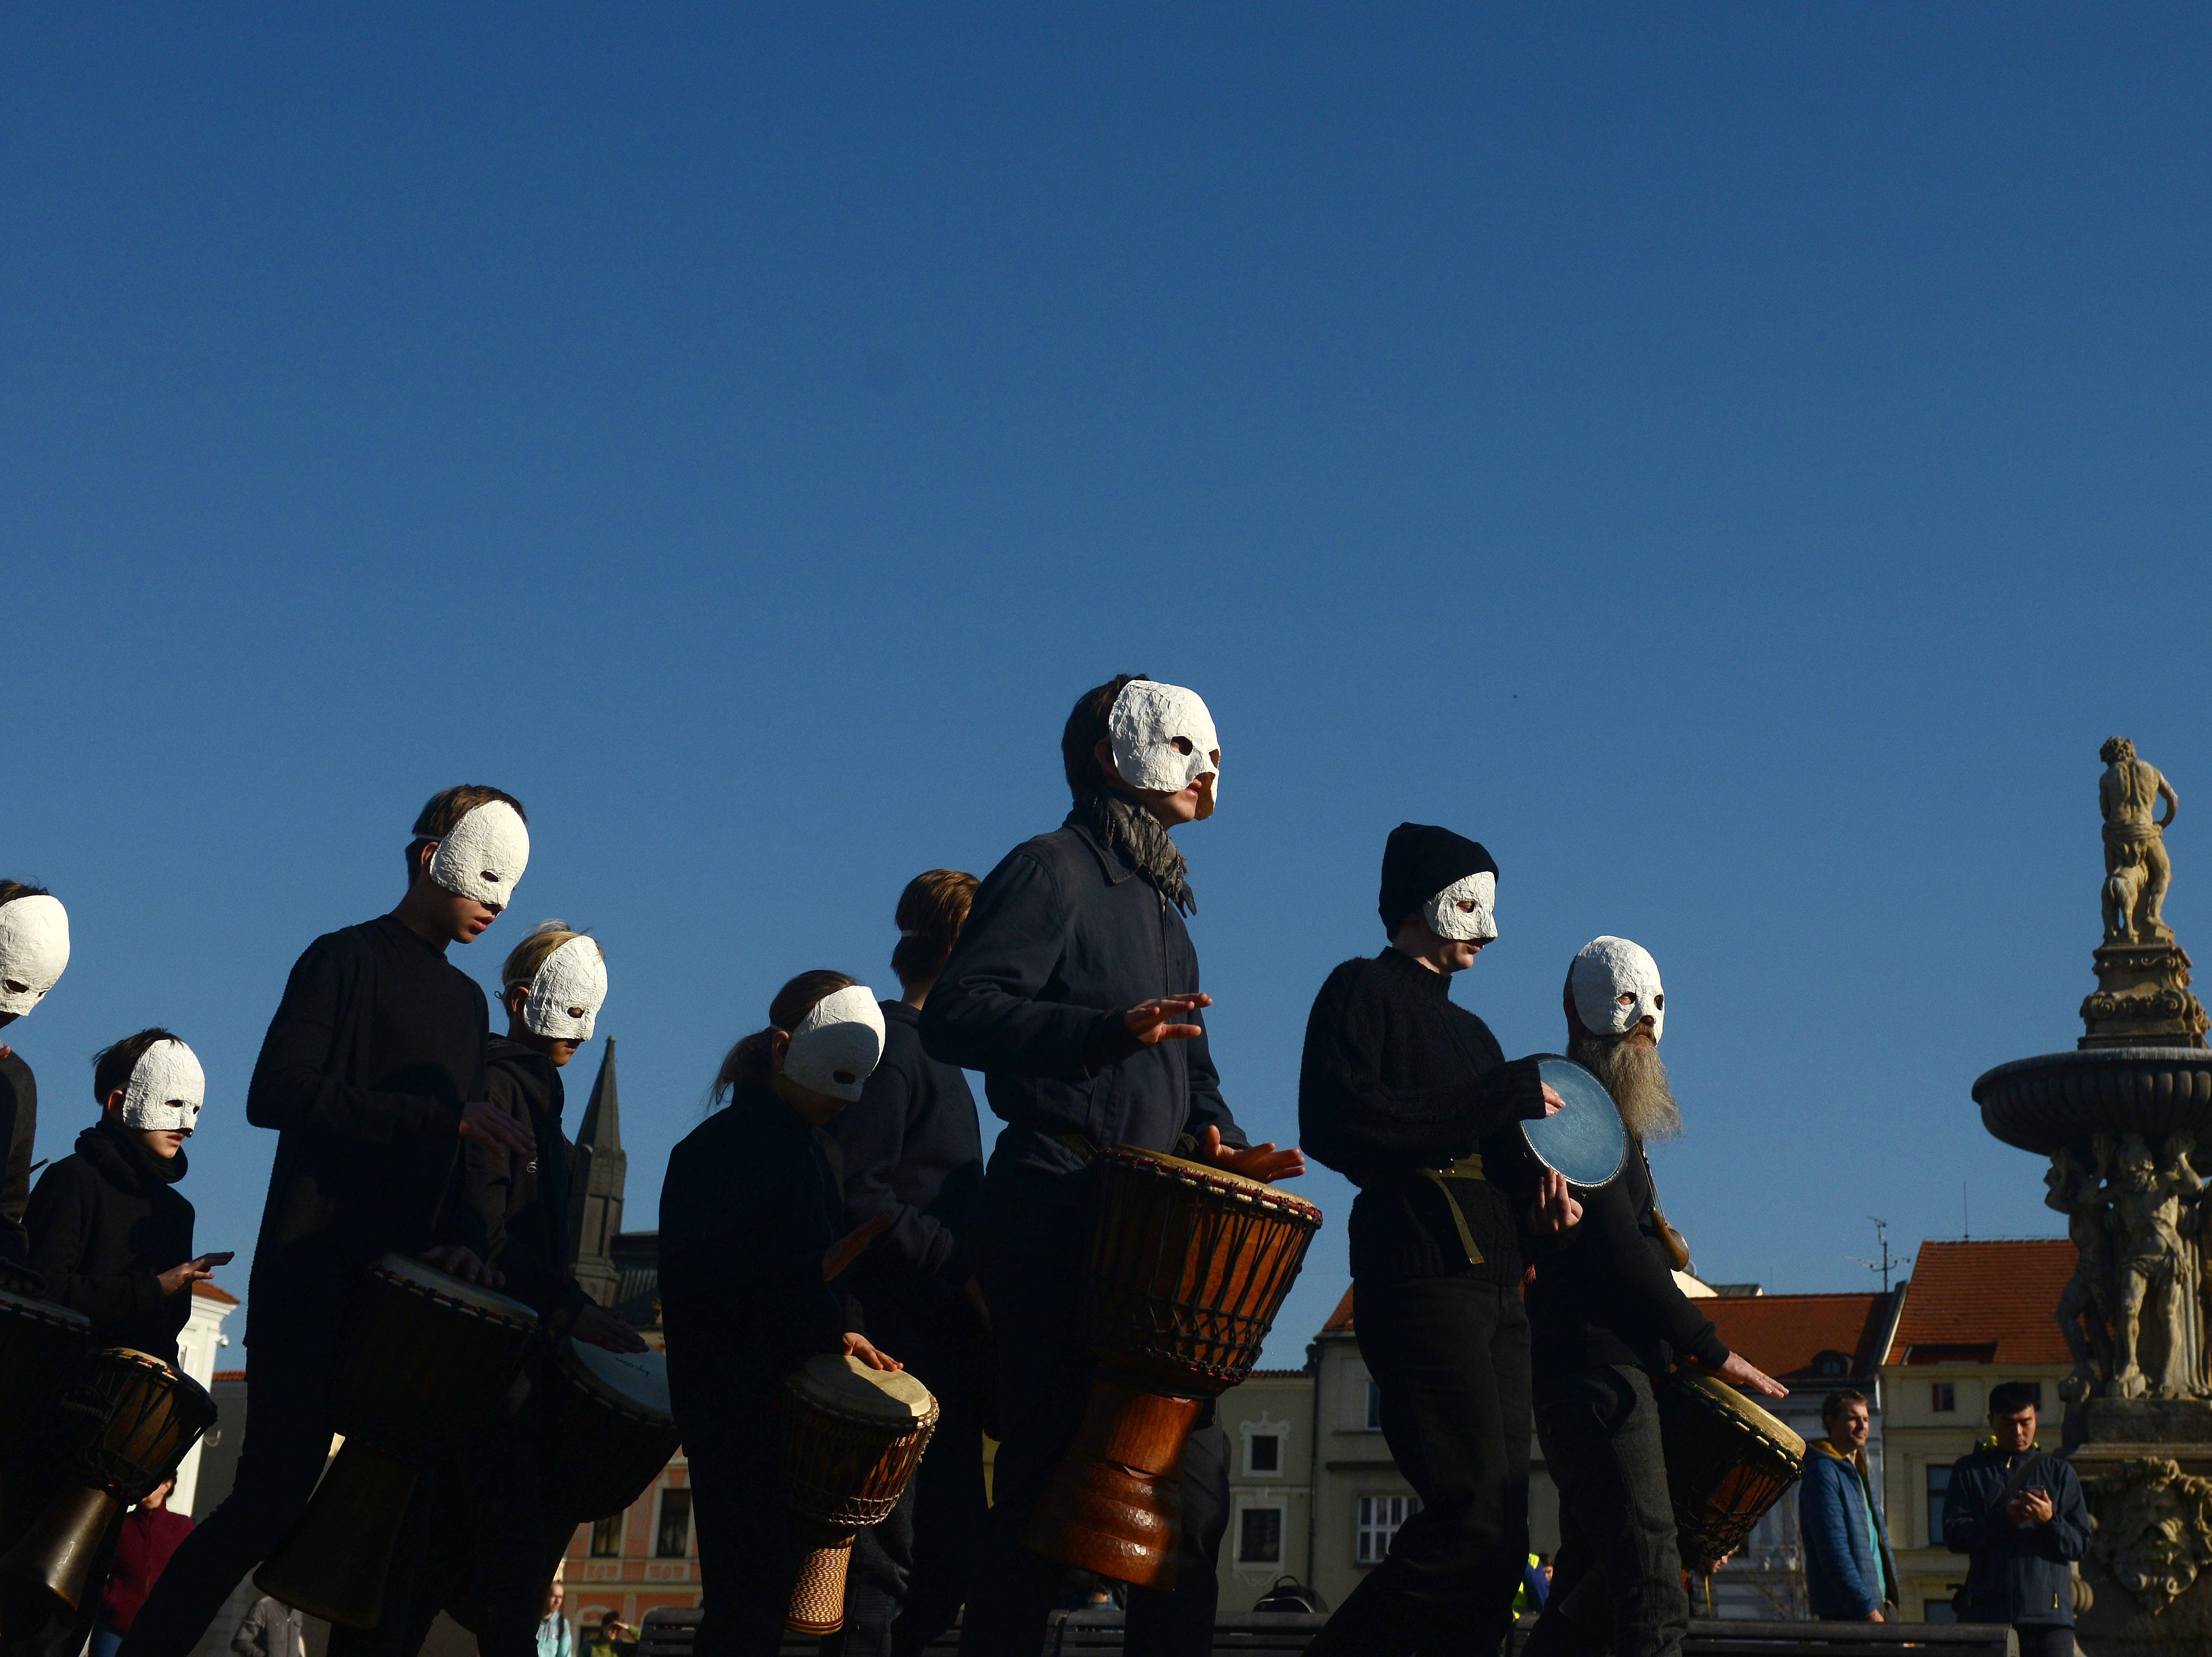 People, wearing white masks, play music during a Czech Easter traditional ritual to mark Good Friday, that recalls for Christians the crucifixion of Jesus Christ ahead of Easter Sunday, on April 19, 2019 in Ceske Budejovice. Christians around the world are marking the Holy Week, commemorating the crucifixion of Jesus Christ, leading up to his resurrection on Easter.